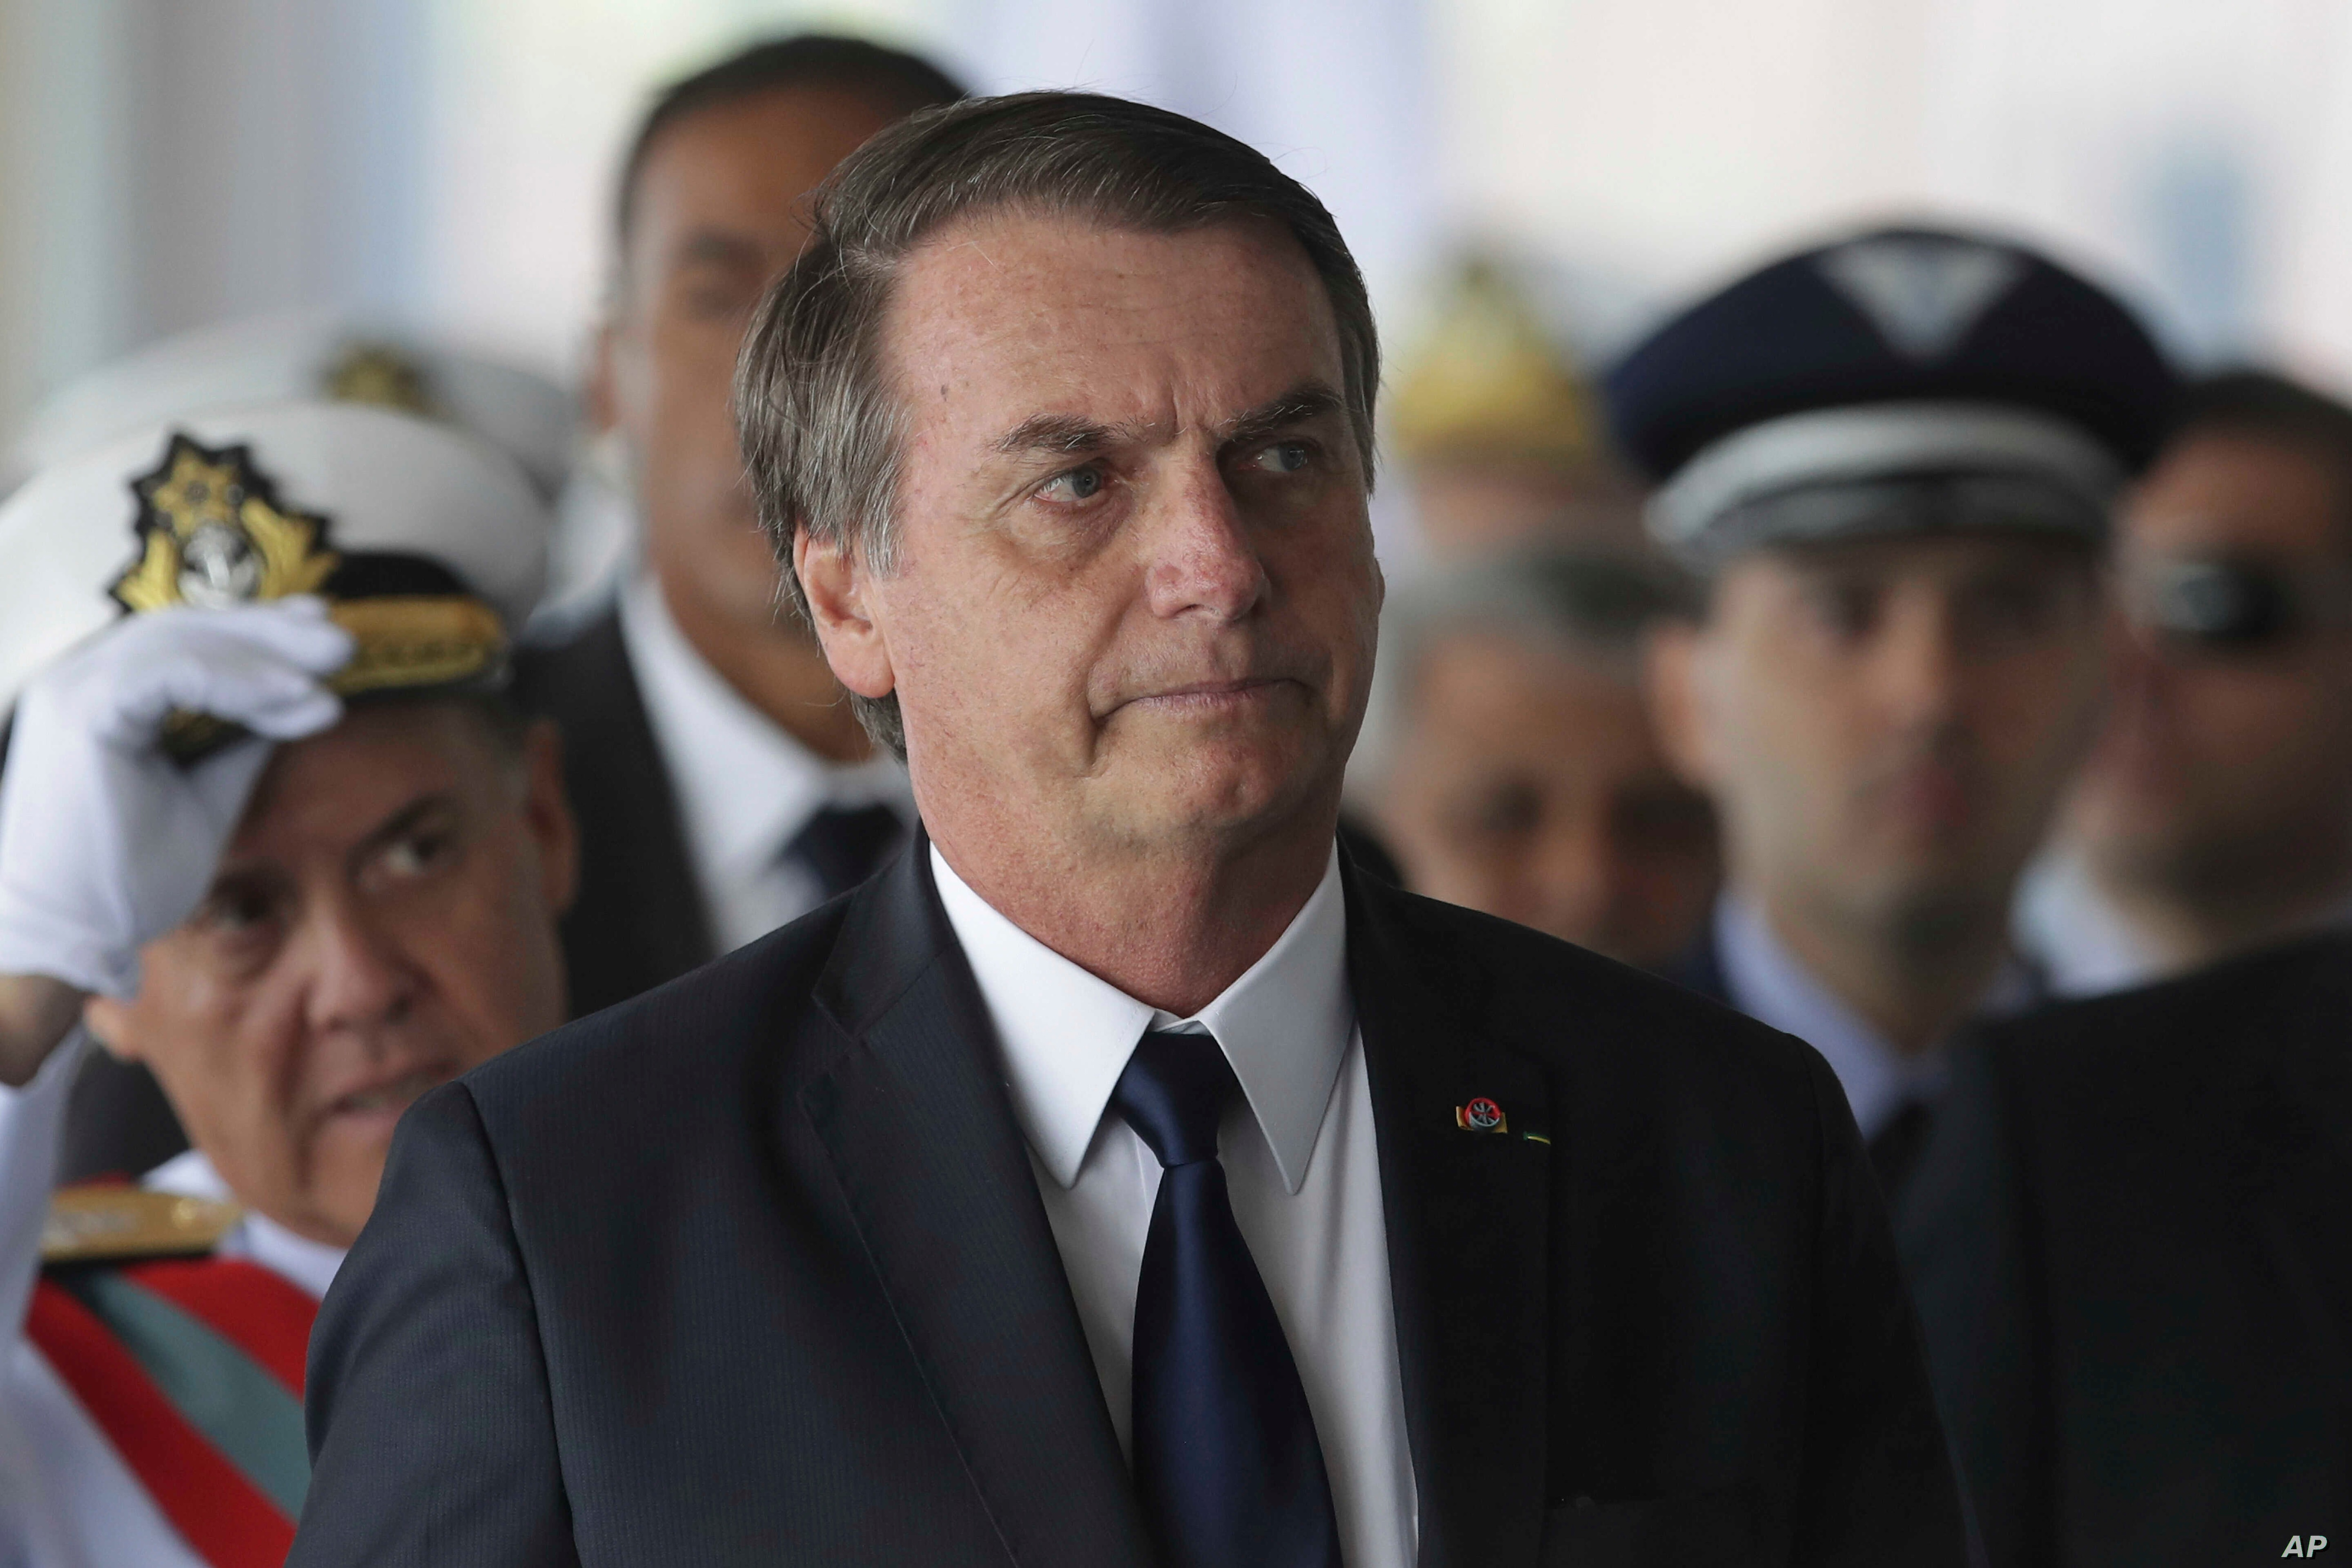 Brazil's President Jair Bolsonaro arrives at the Naval Club in Brasilia, Brazil, Jan. 9, 2019. Overhaul of the costly state pension system is a top priority for the country's new president.